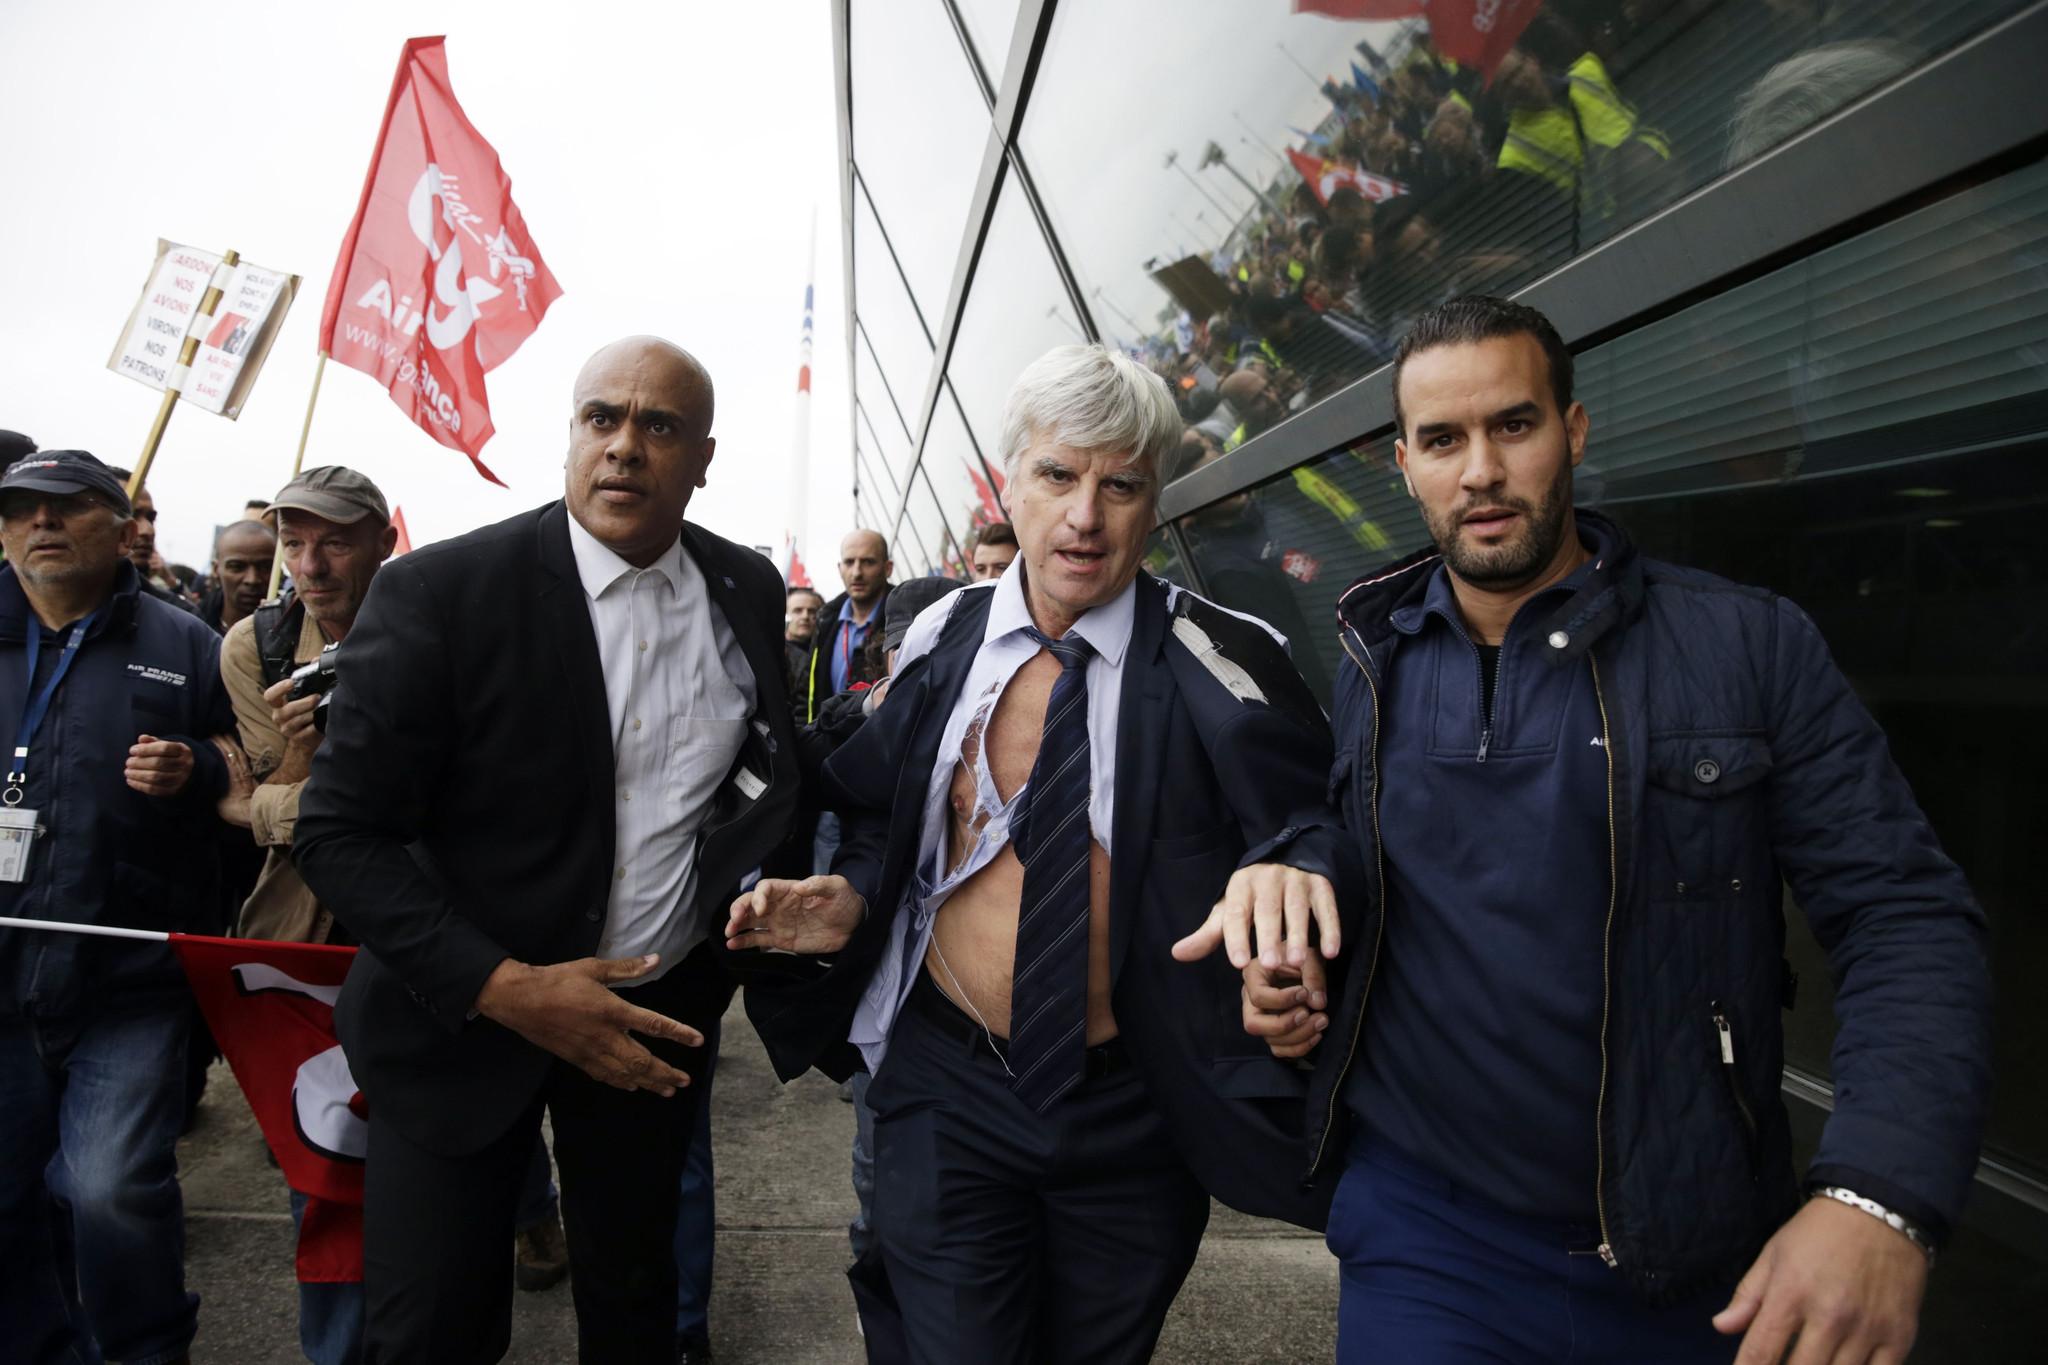 Workers attack Air France managers, forcing them to flee